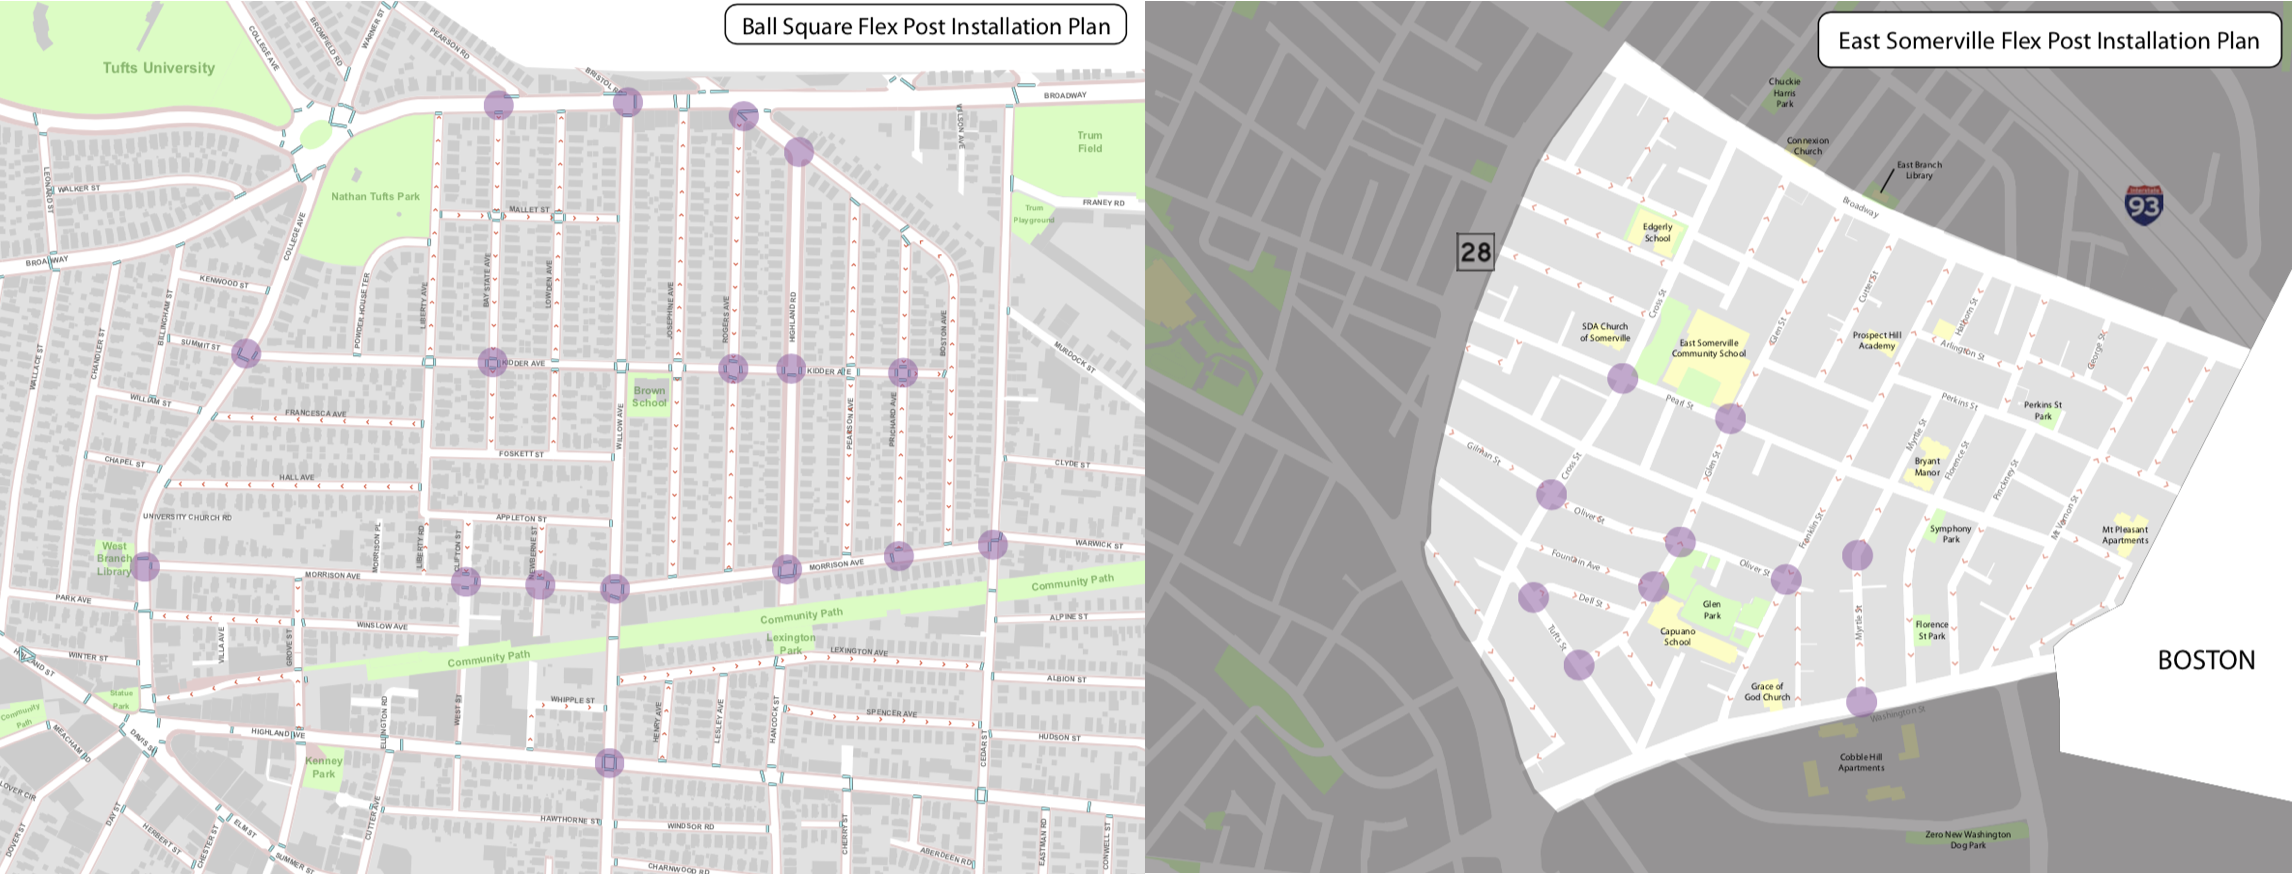 Map of flex posts installed in East Somerville and Ball Sq.